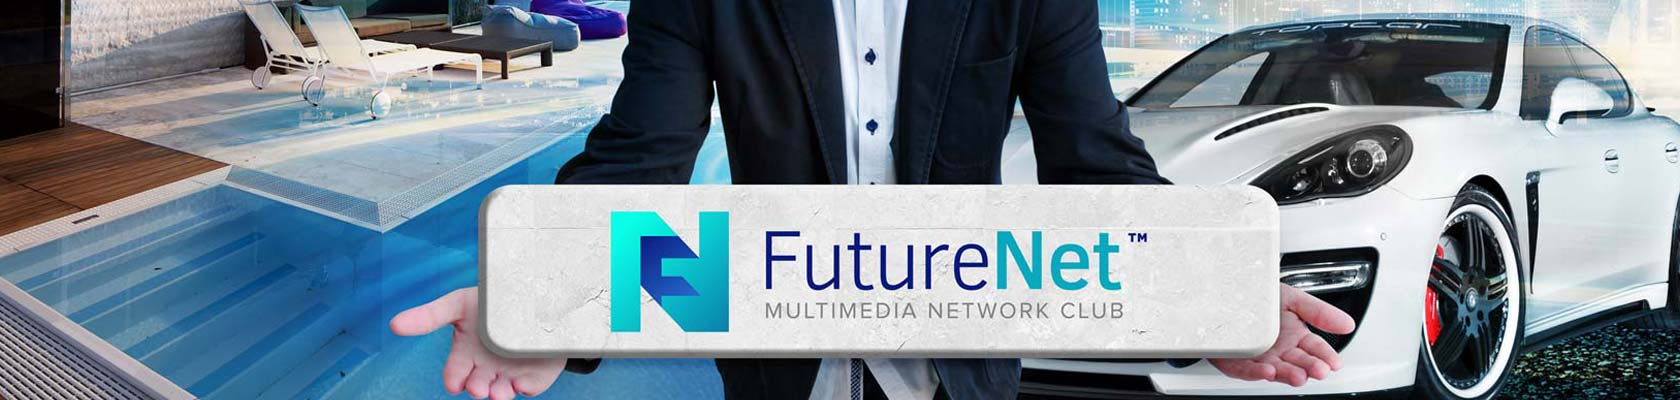 futurenet-in-sinhala